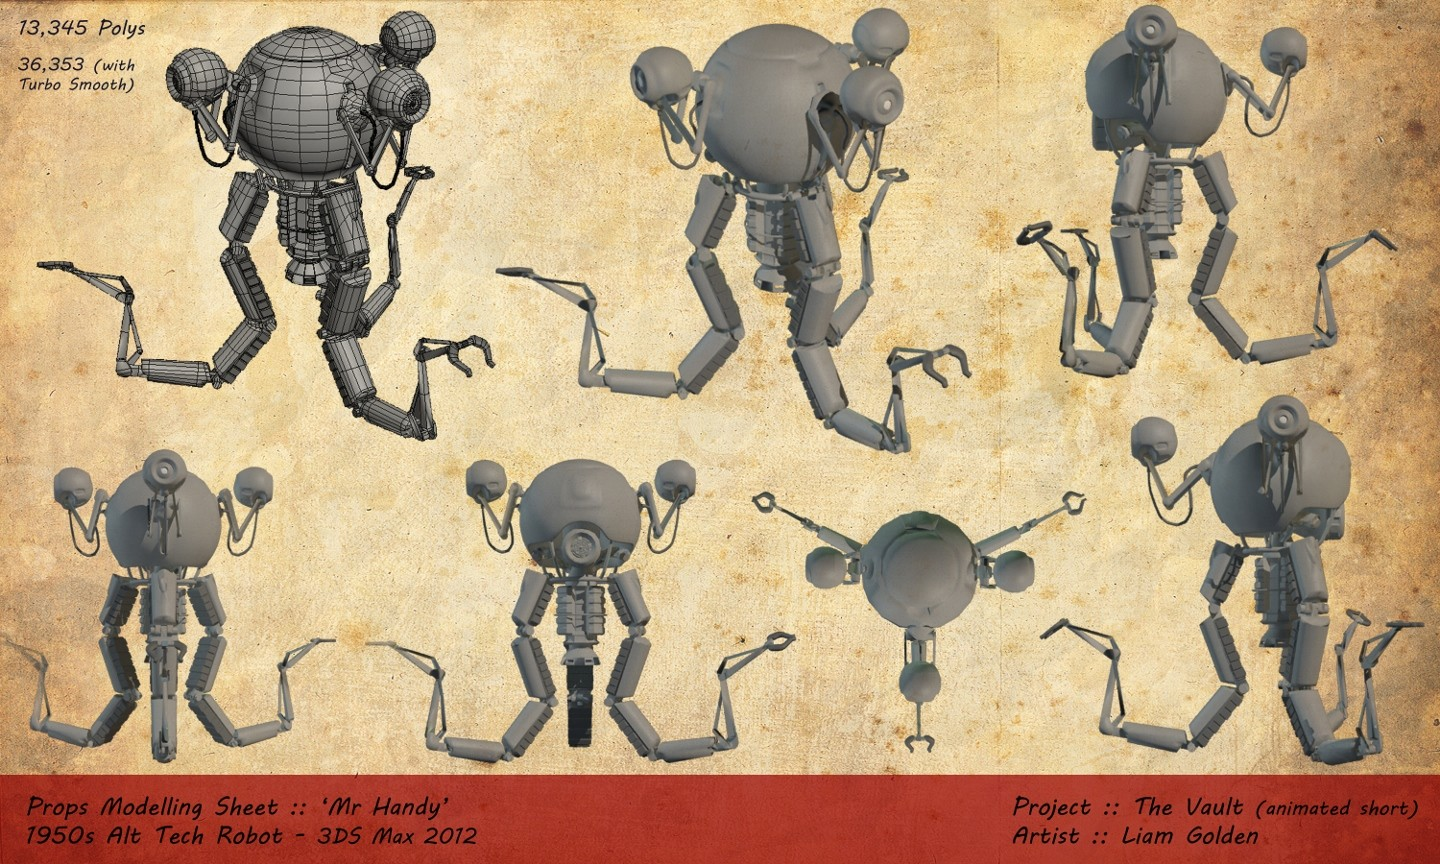 Liam golden mr handy prop modelling sheet 1440x864